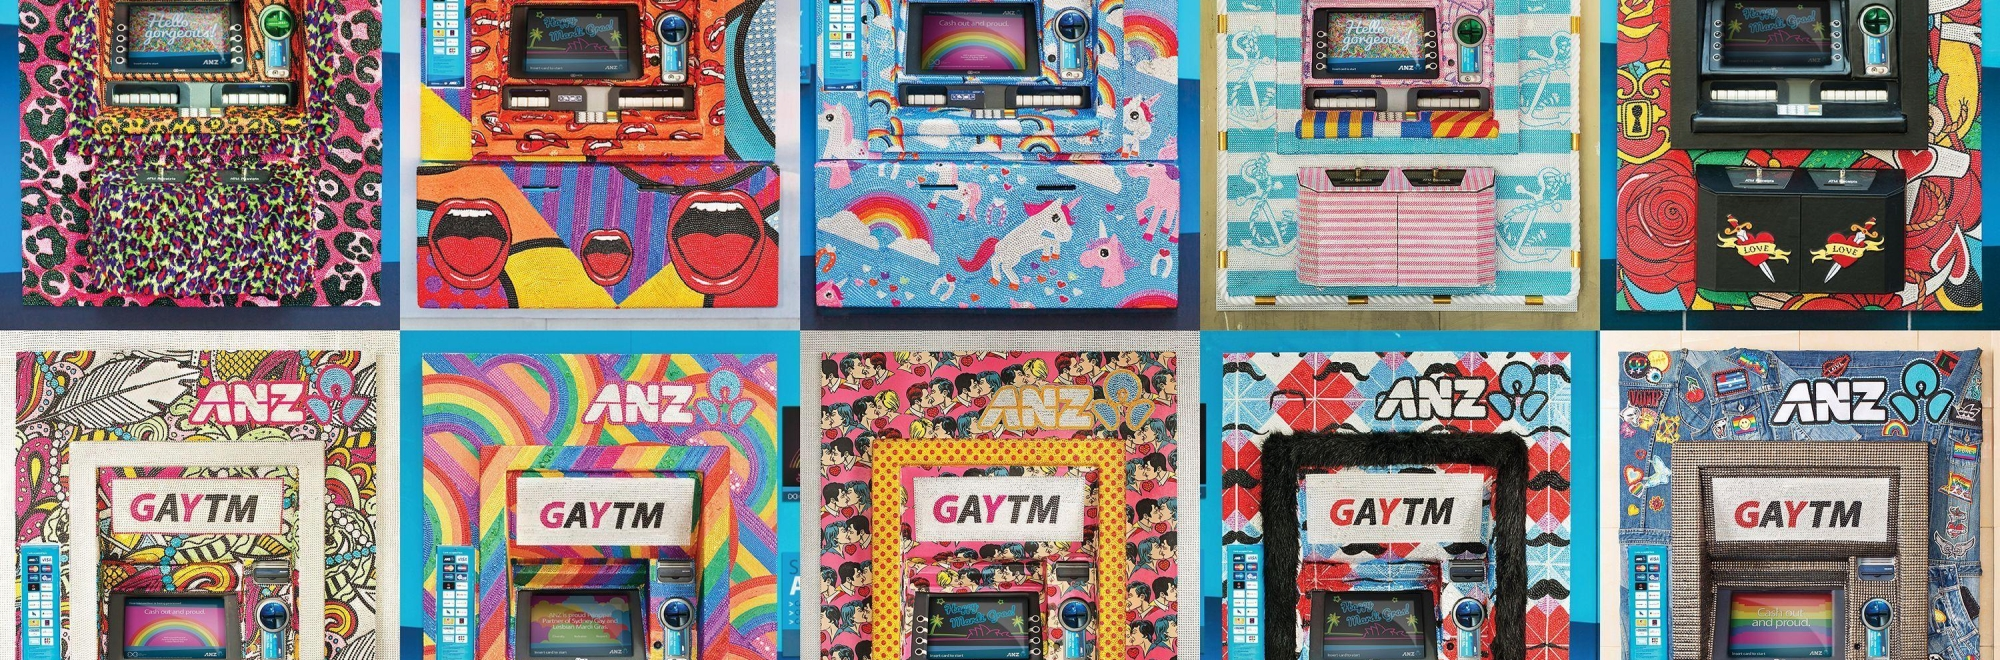 How ANZ's pride campaign celebrates diversity and inclusion